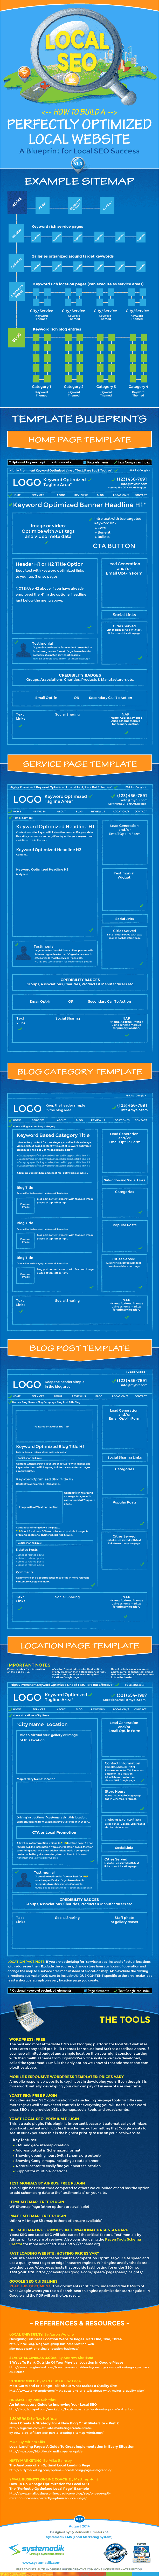 Local-SEO-Template-Blueprint-Infographic3